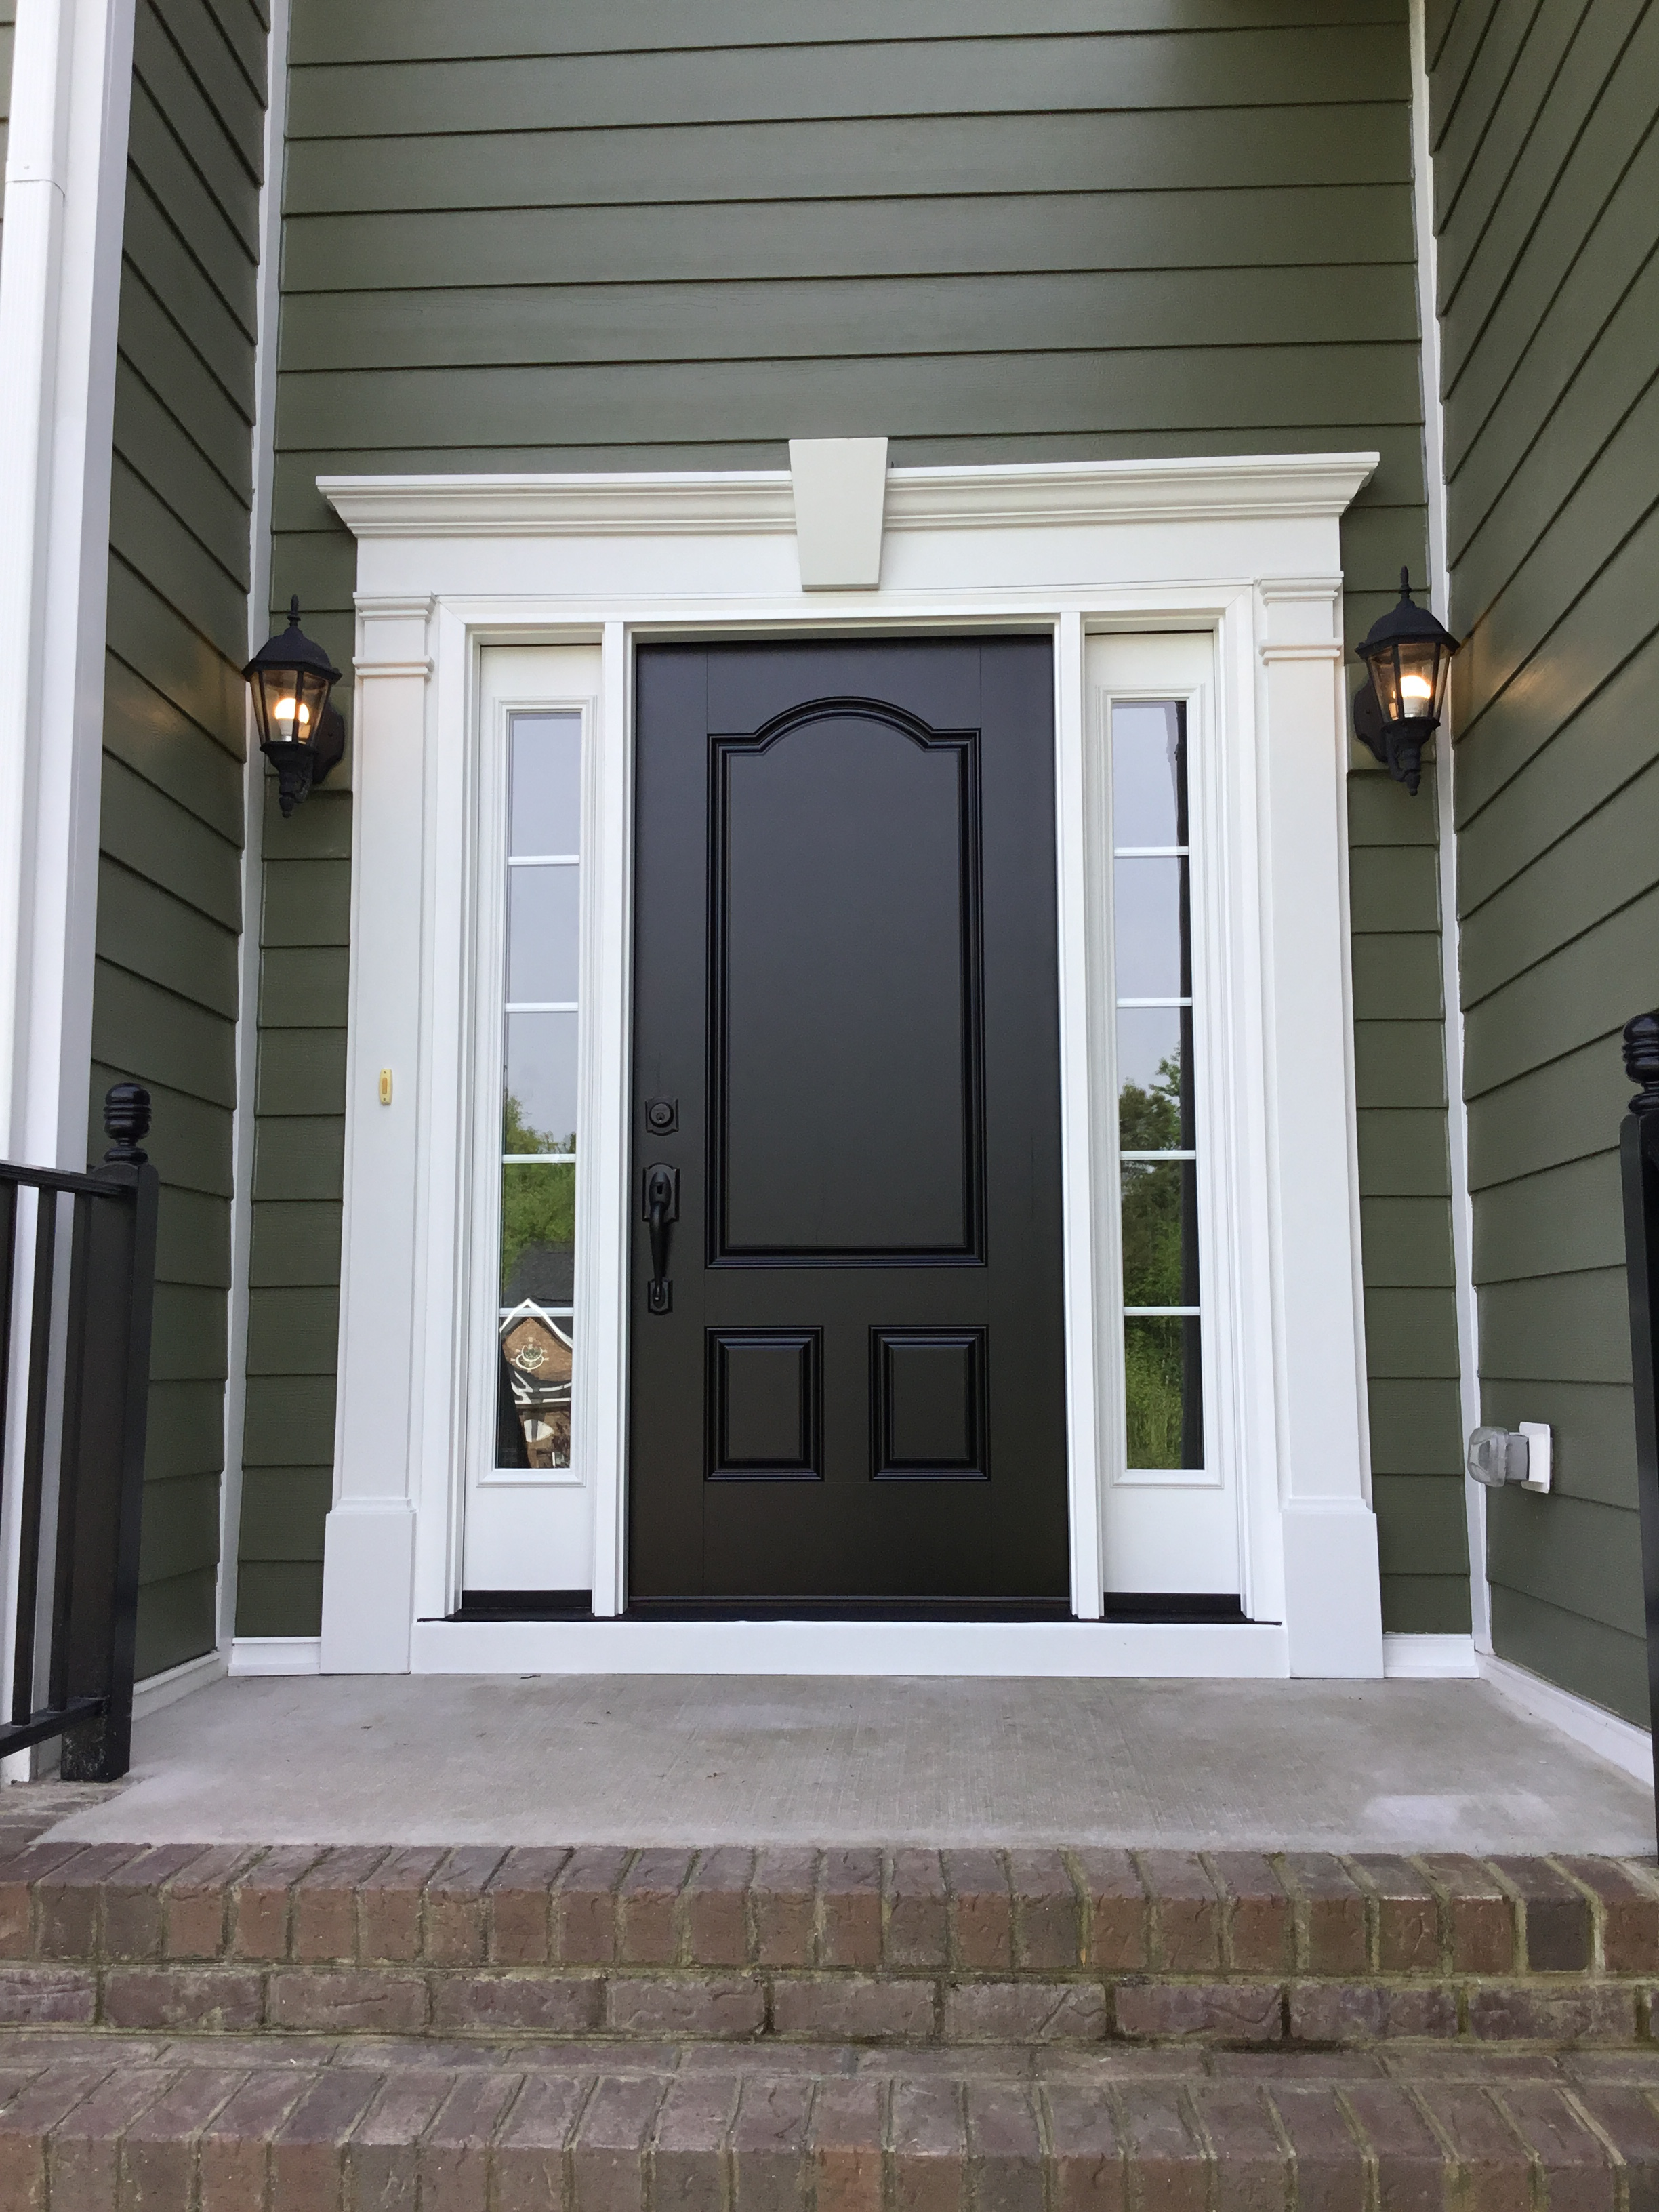 ProVia Entry Door Systems